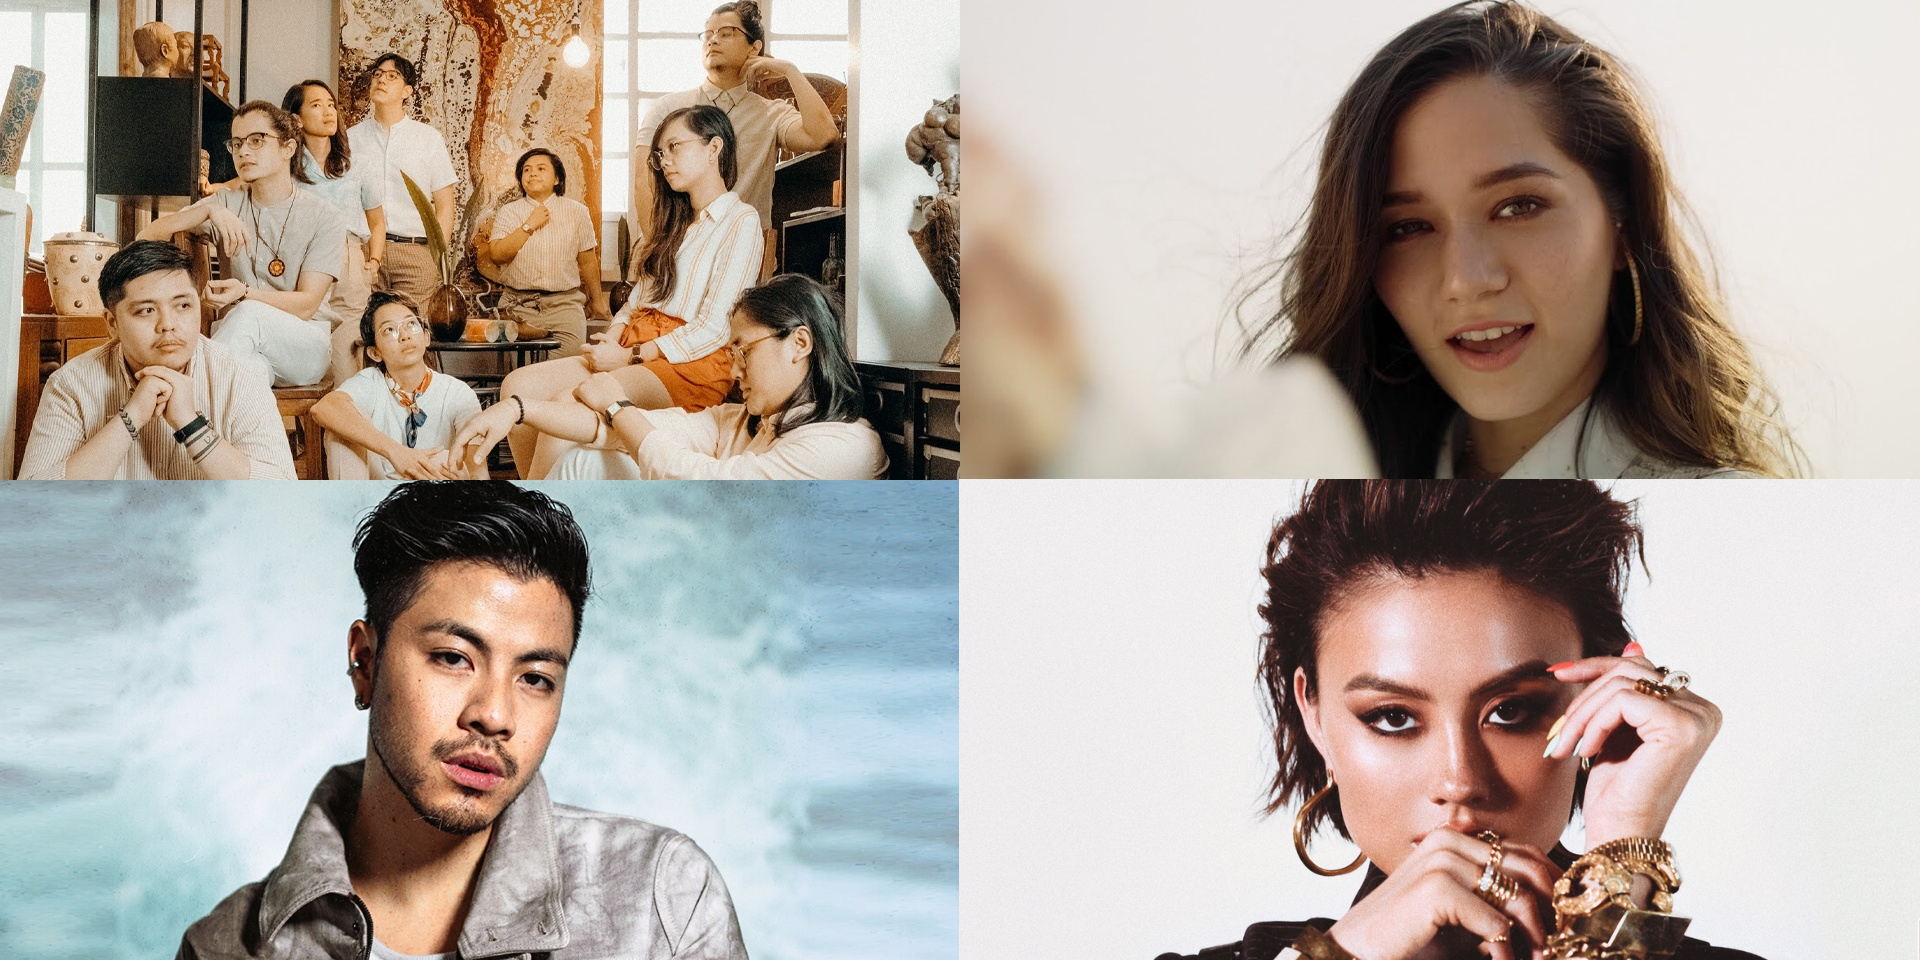 Agnez Mo, Ben&Ben, Benjamin Kheng, Violette Wautier, K-Clique, and more nominated for Best Southeast Asia Act at the 2020 MTV EMAs